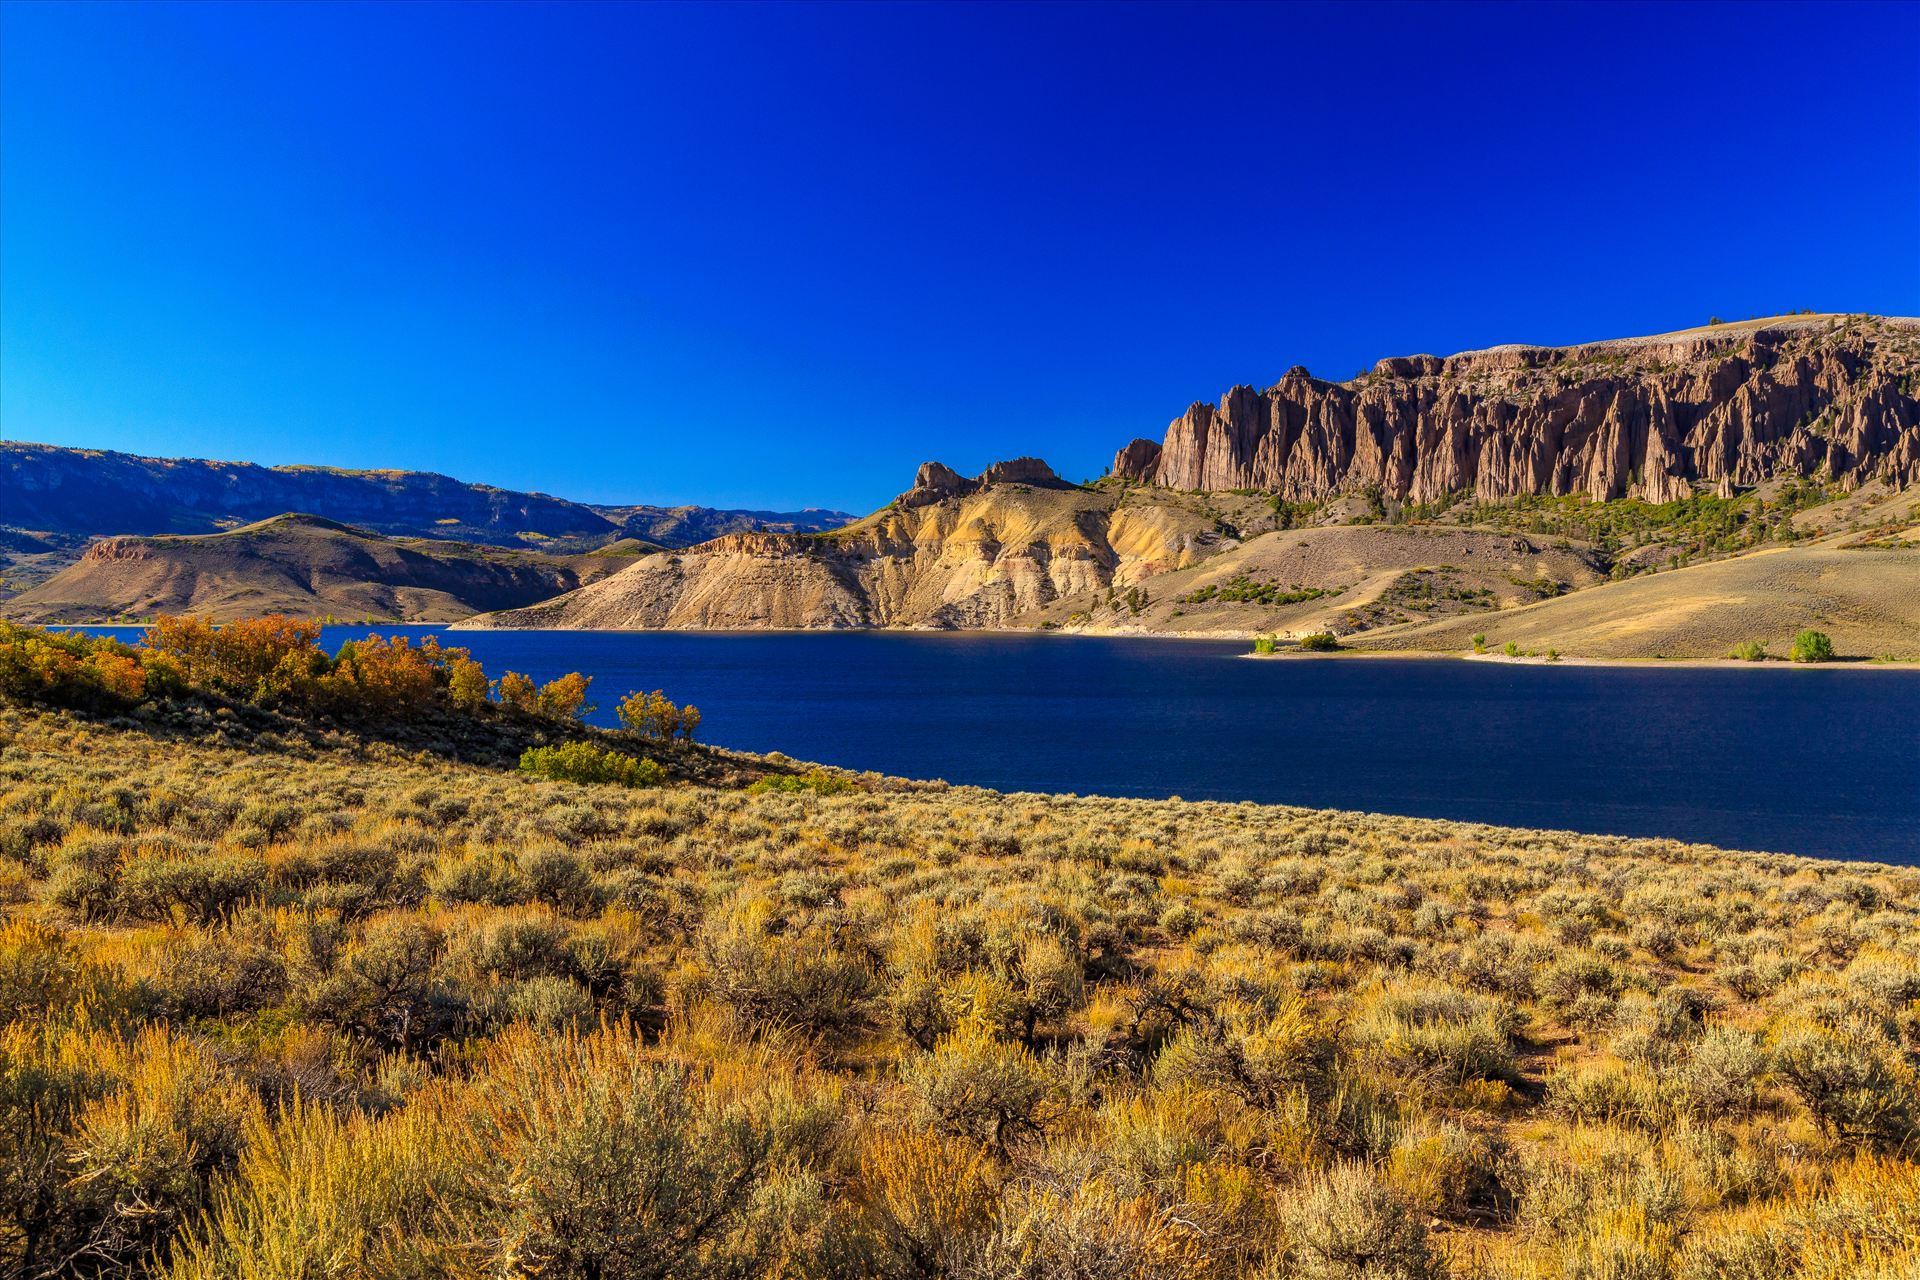 Dillon Pinnacles and Gunnison River - The Dillon Pinnacles tower over the beautiful Gunnison River, near Gunnison Colorado. by D Scott Smith